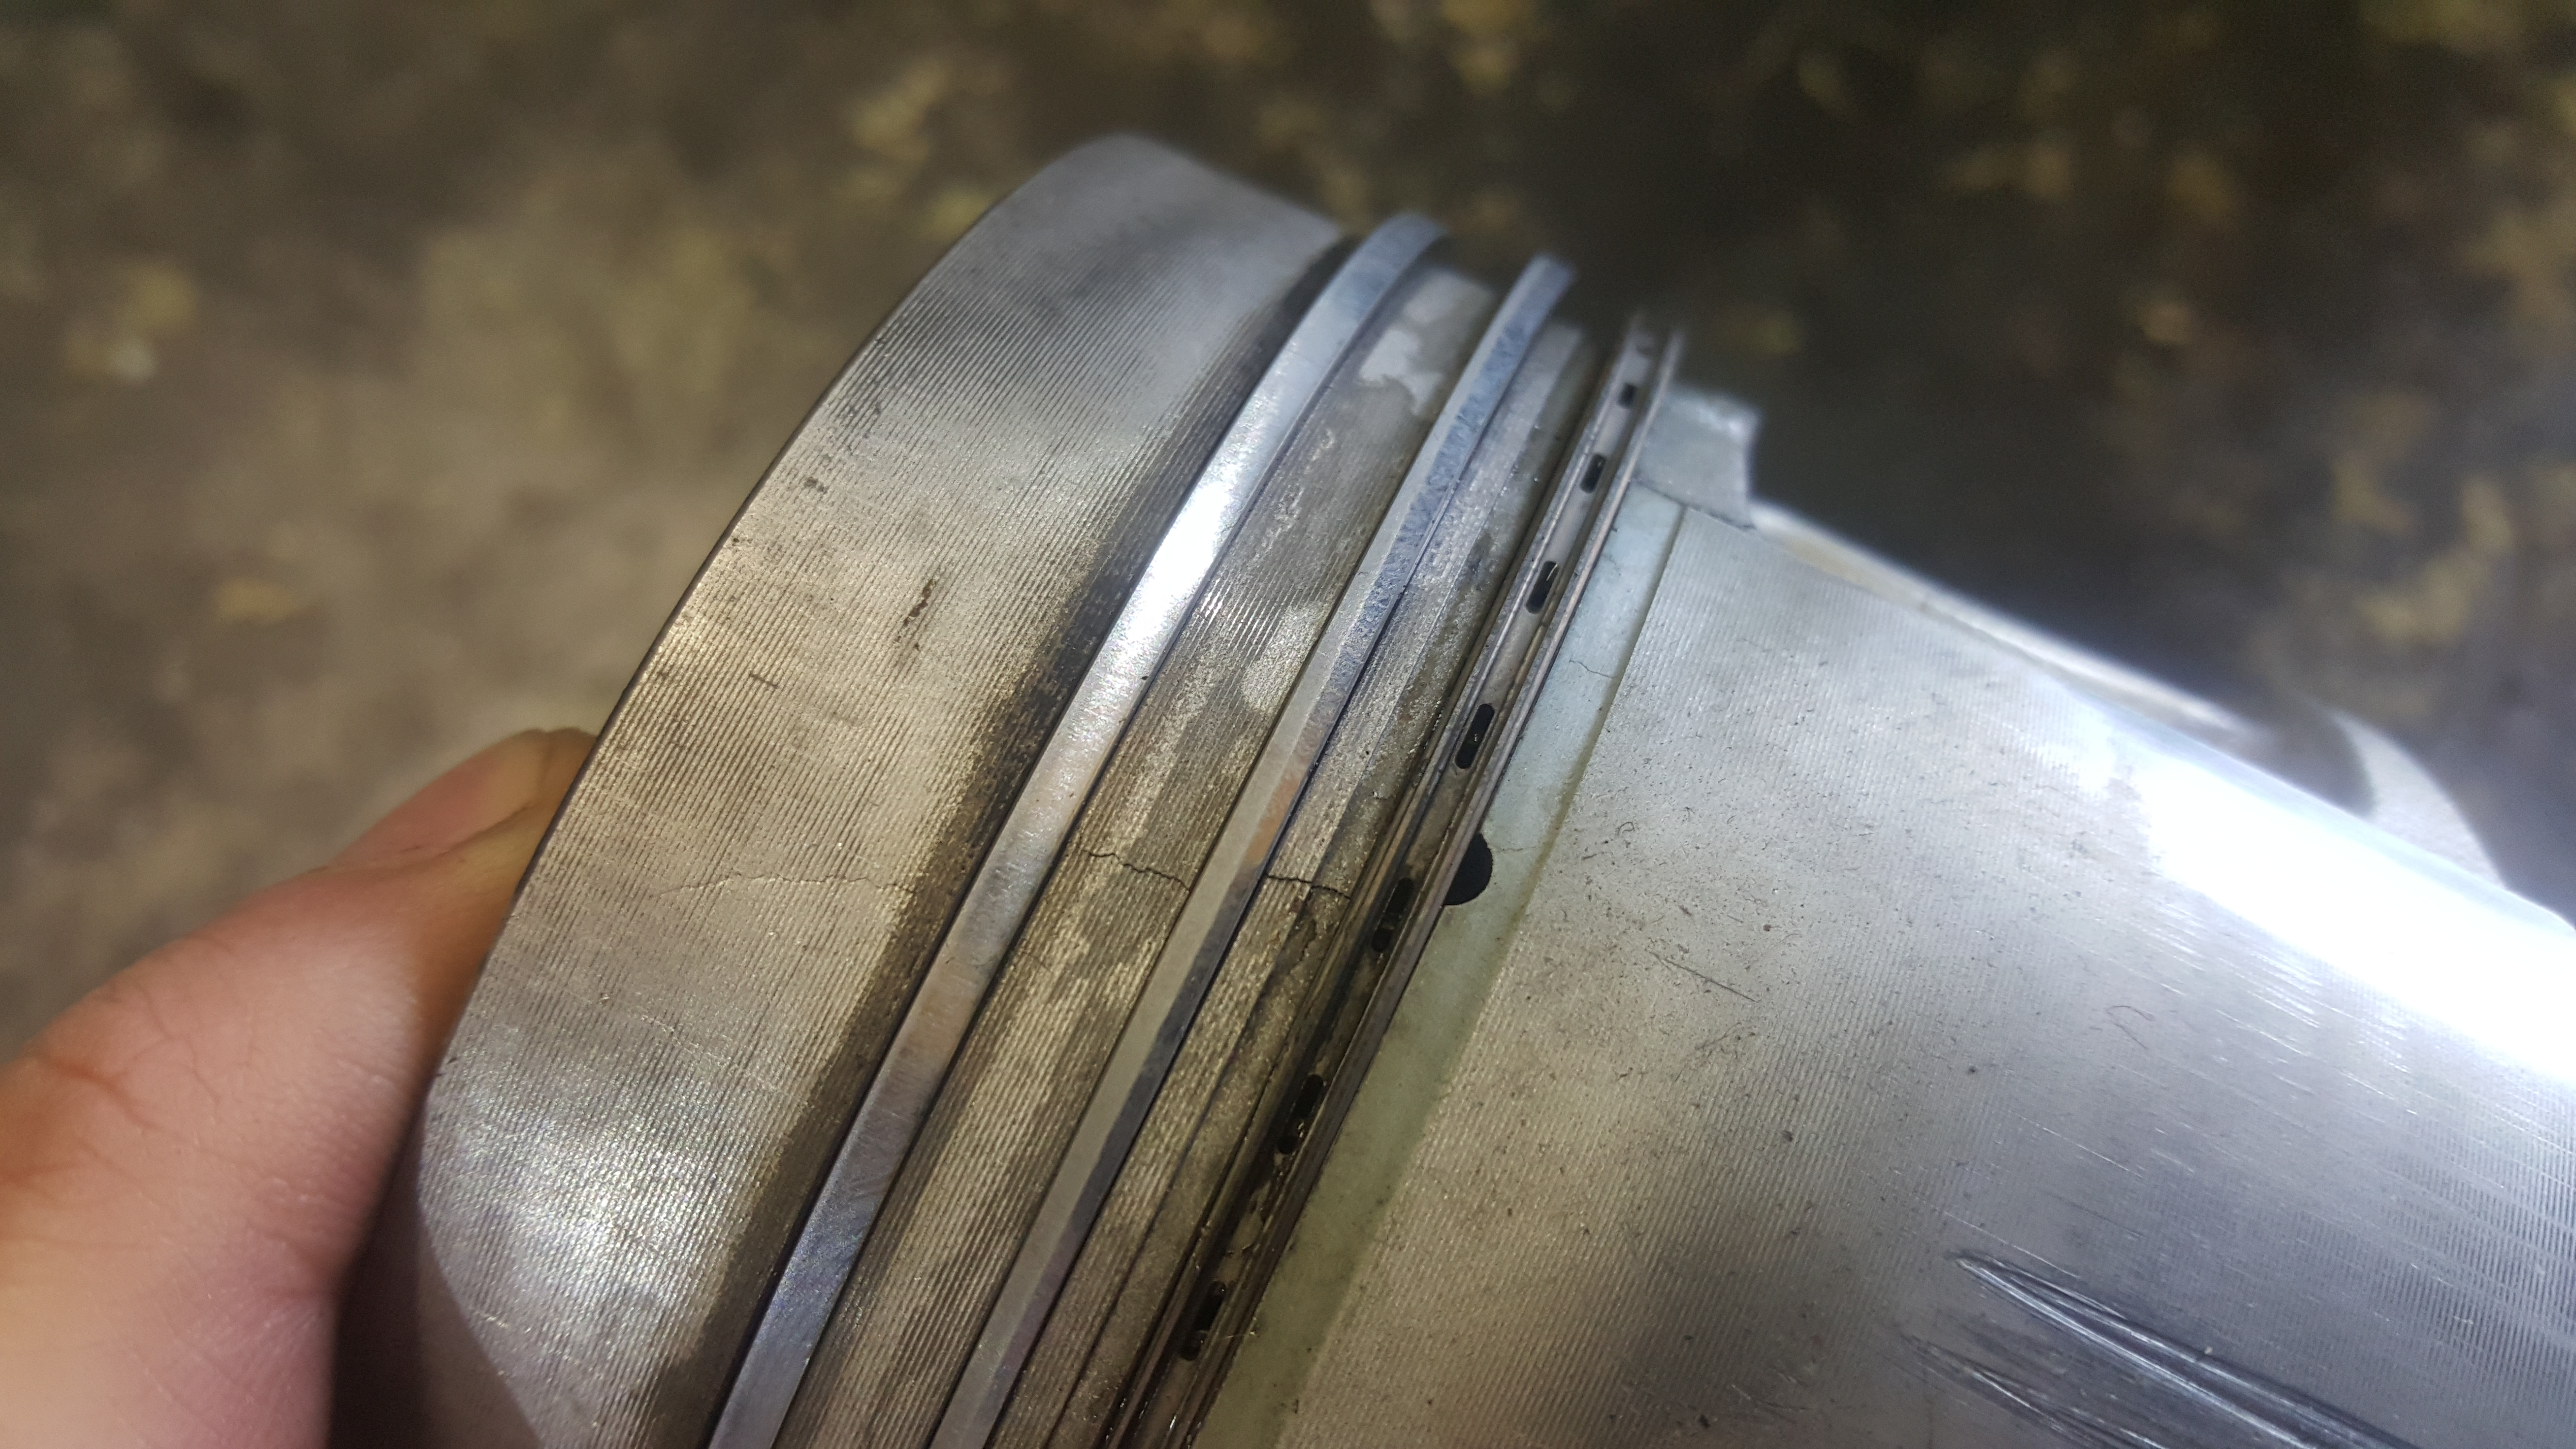 Cracked Piston2.jpg